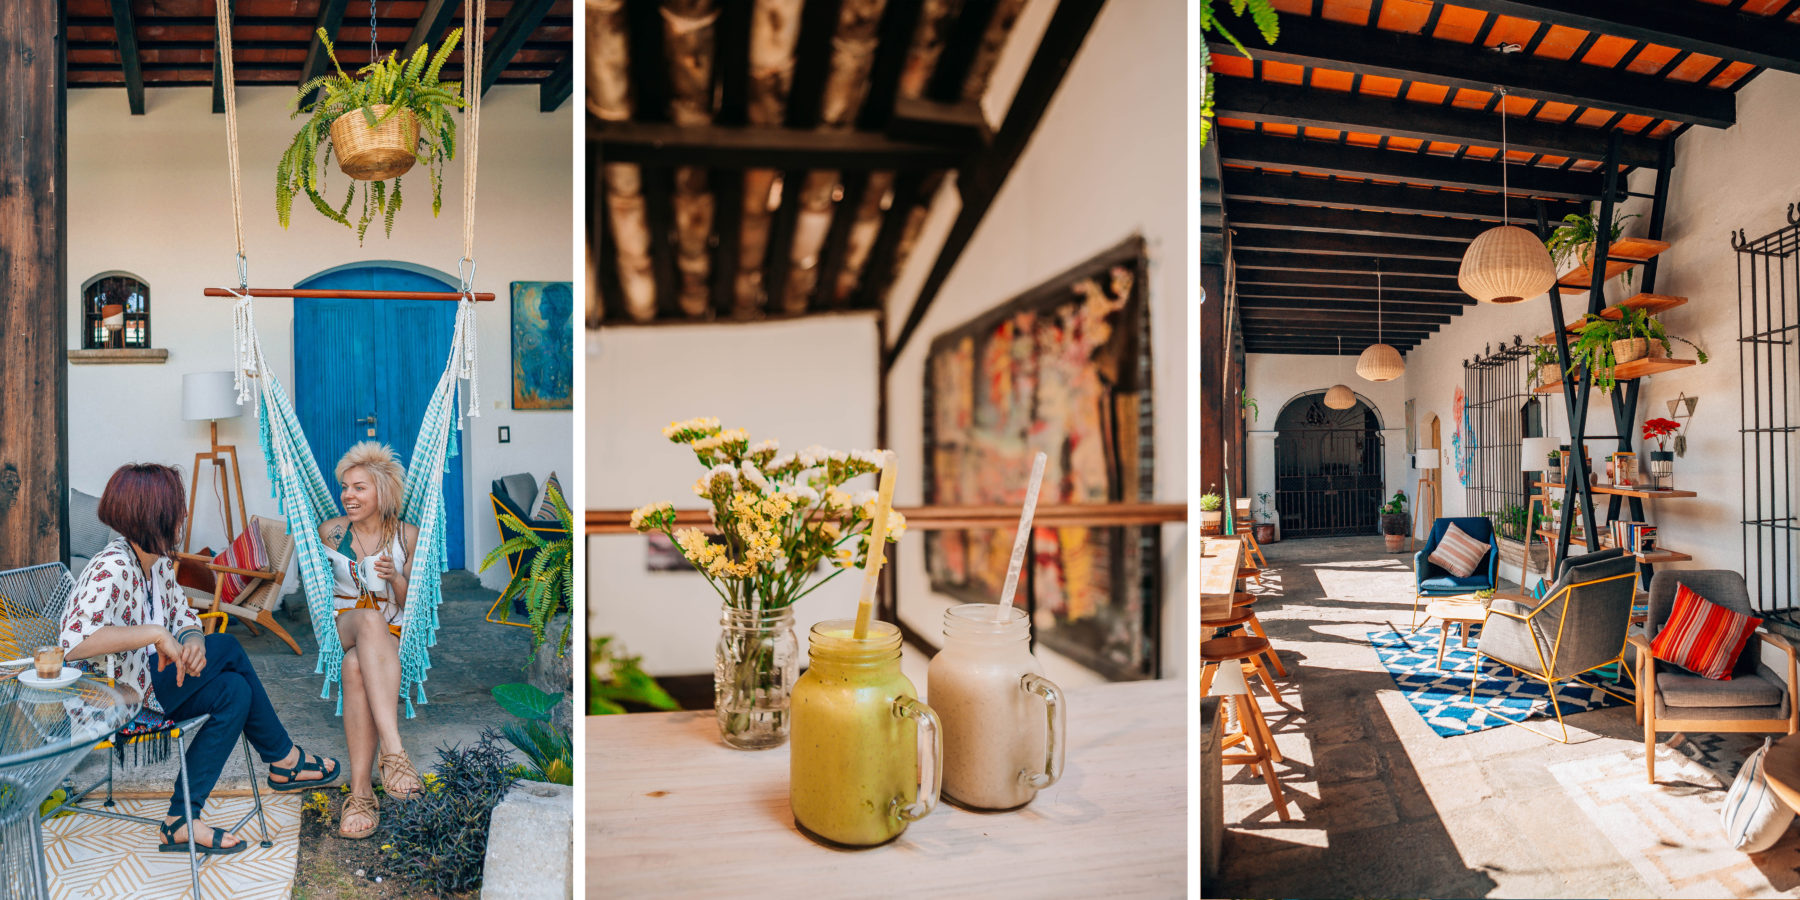 antigua guatemala colourful colonian central america local people volcano streets smoothies cafs ara hostel colourful interior